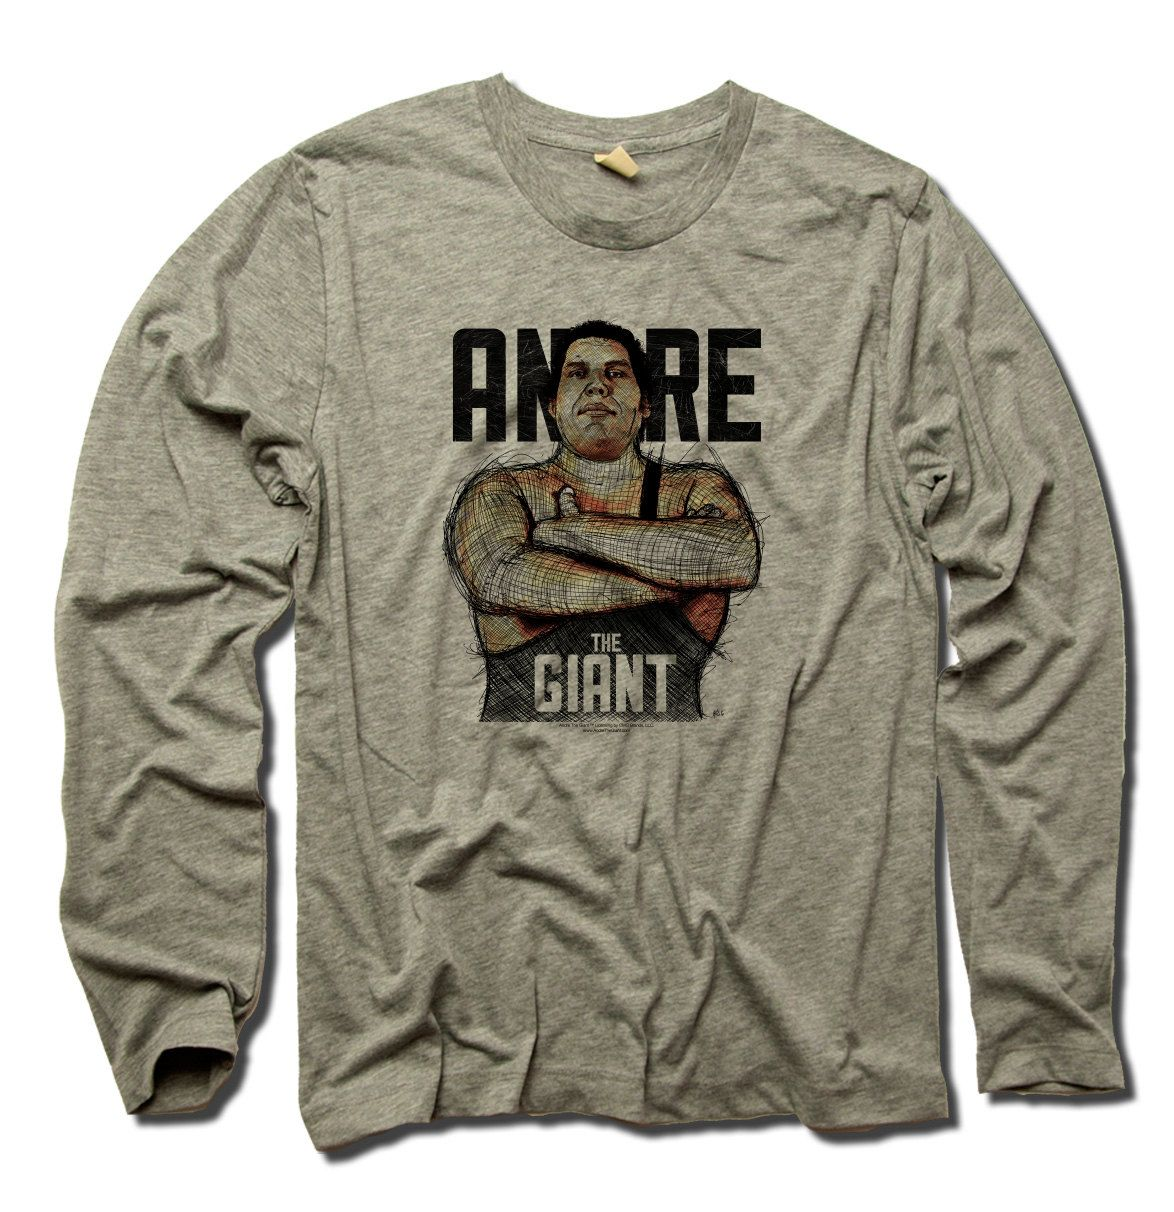 Andre Roussimoff Pro Wrestling Officially Licensed Long Sleeve Shirt S-3XL Andre the Giant Sketch B